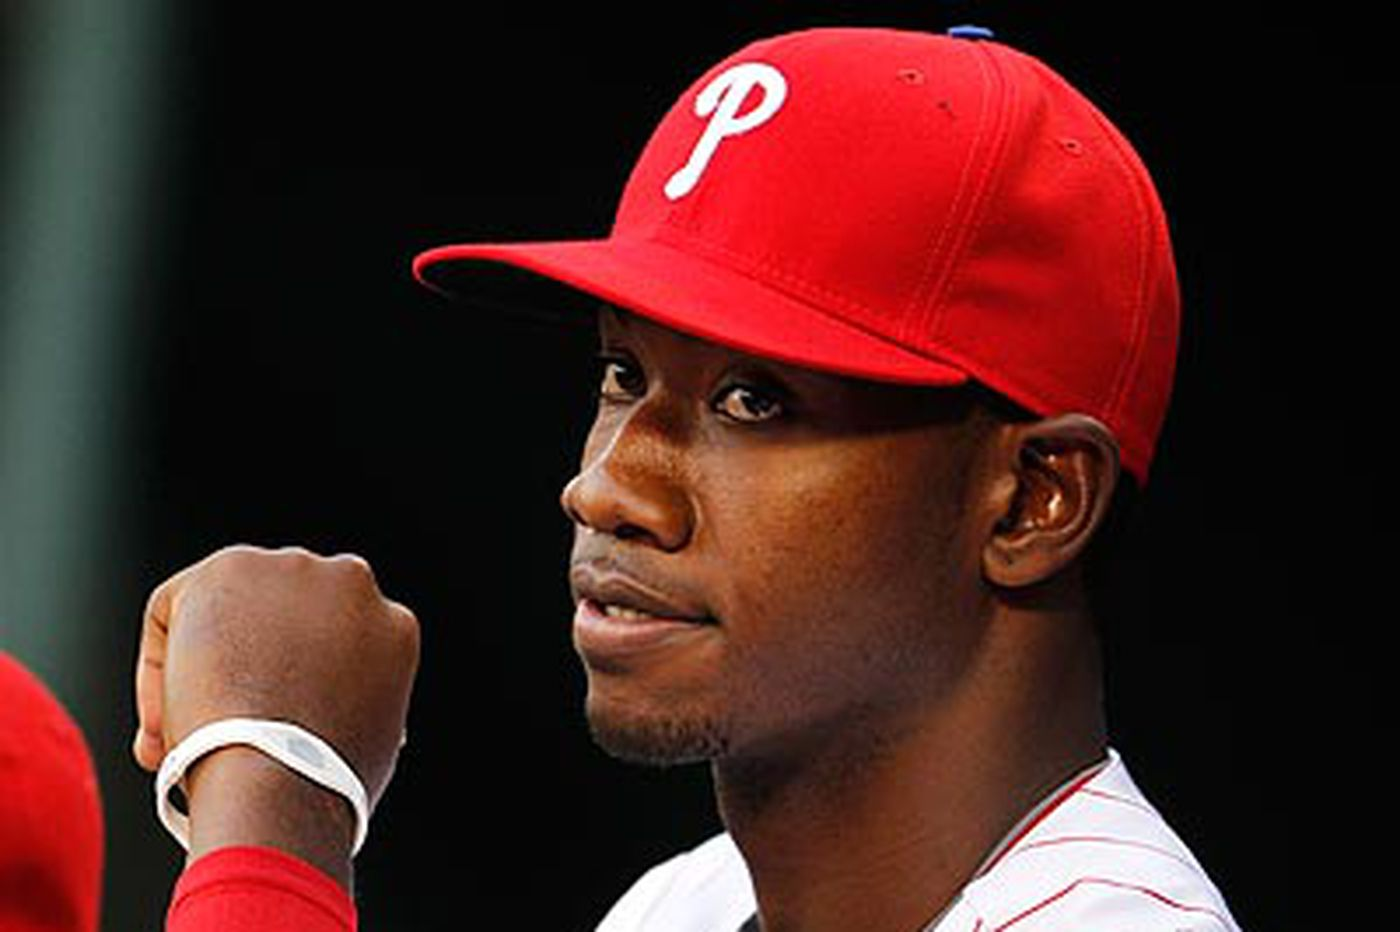 Phillies Notebook: Phillies brass decides time right for Brown, after all